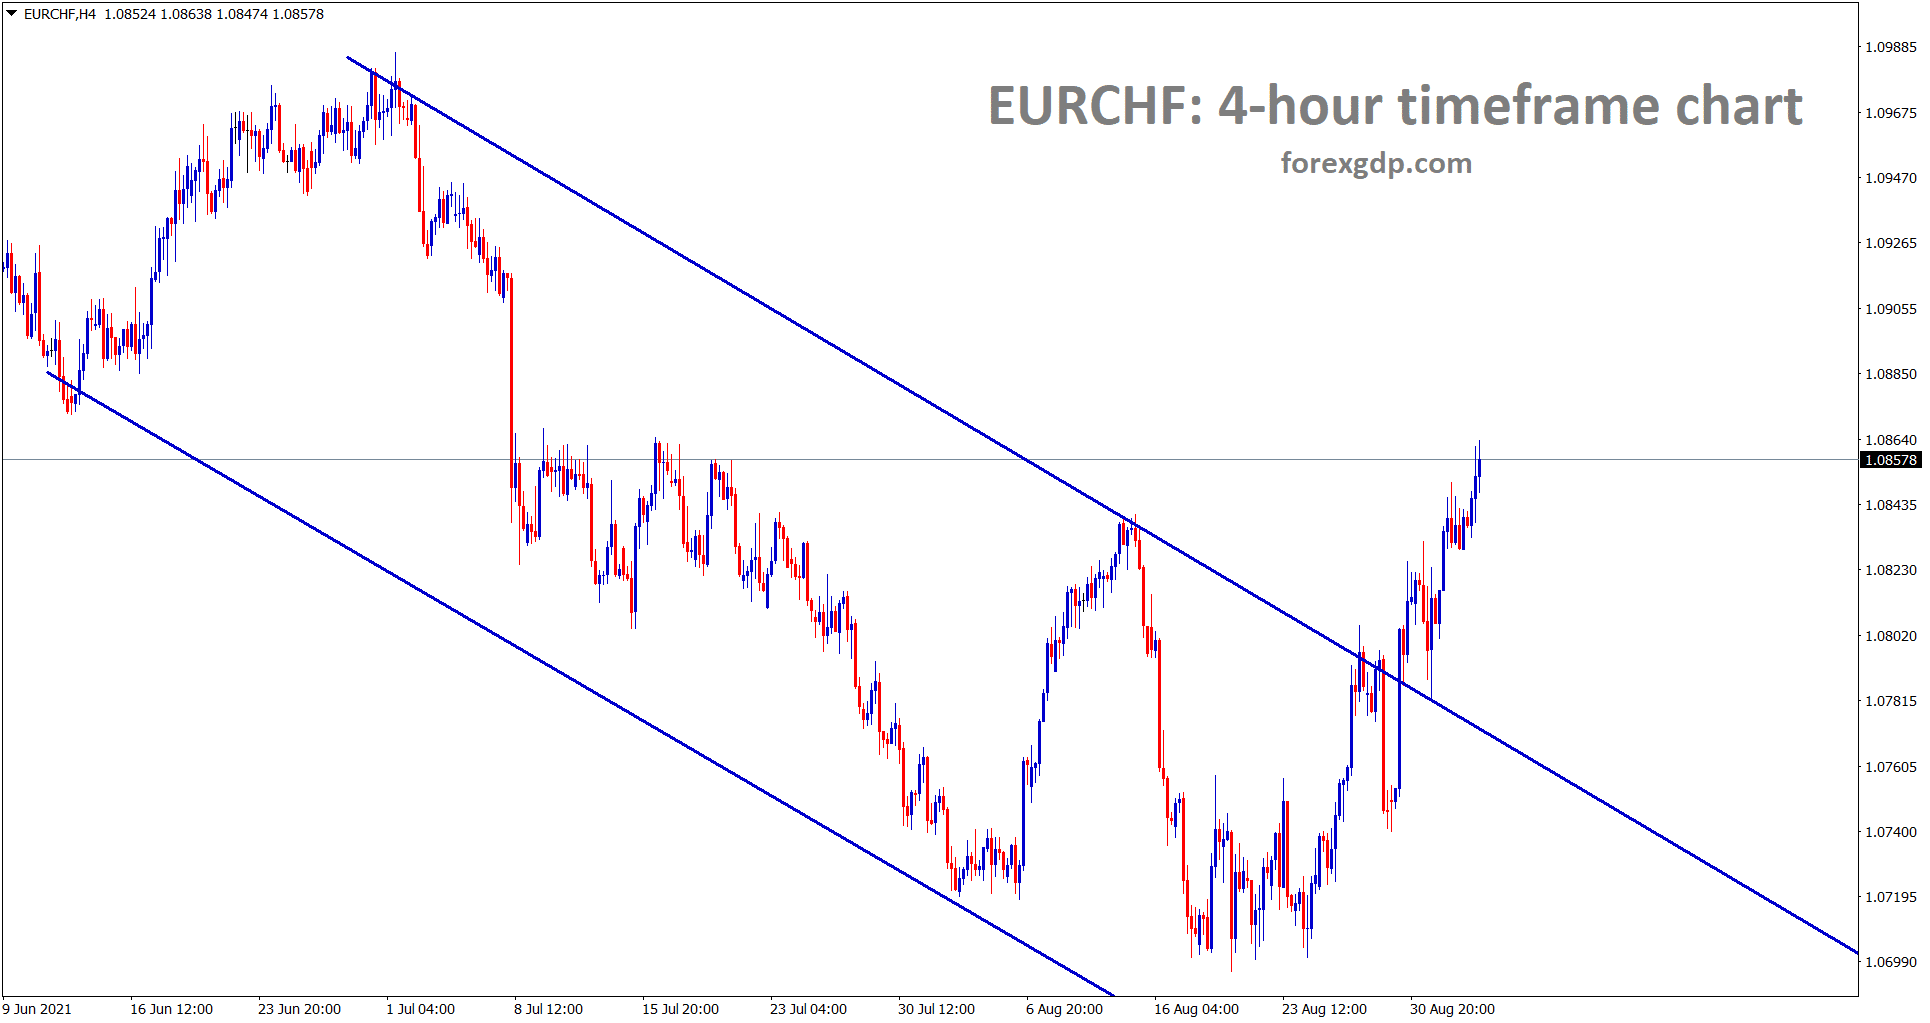 EURCHF has broken the top of the descending channel and rising up strongly